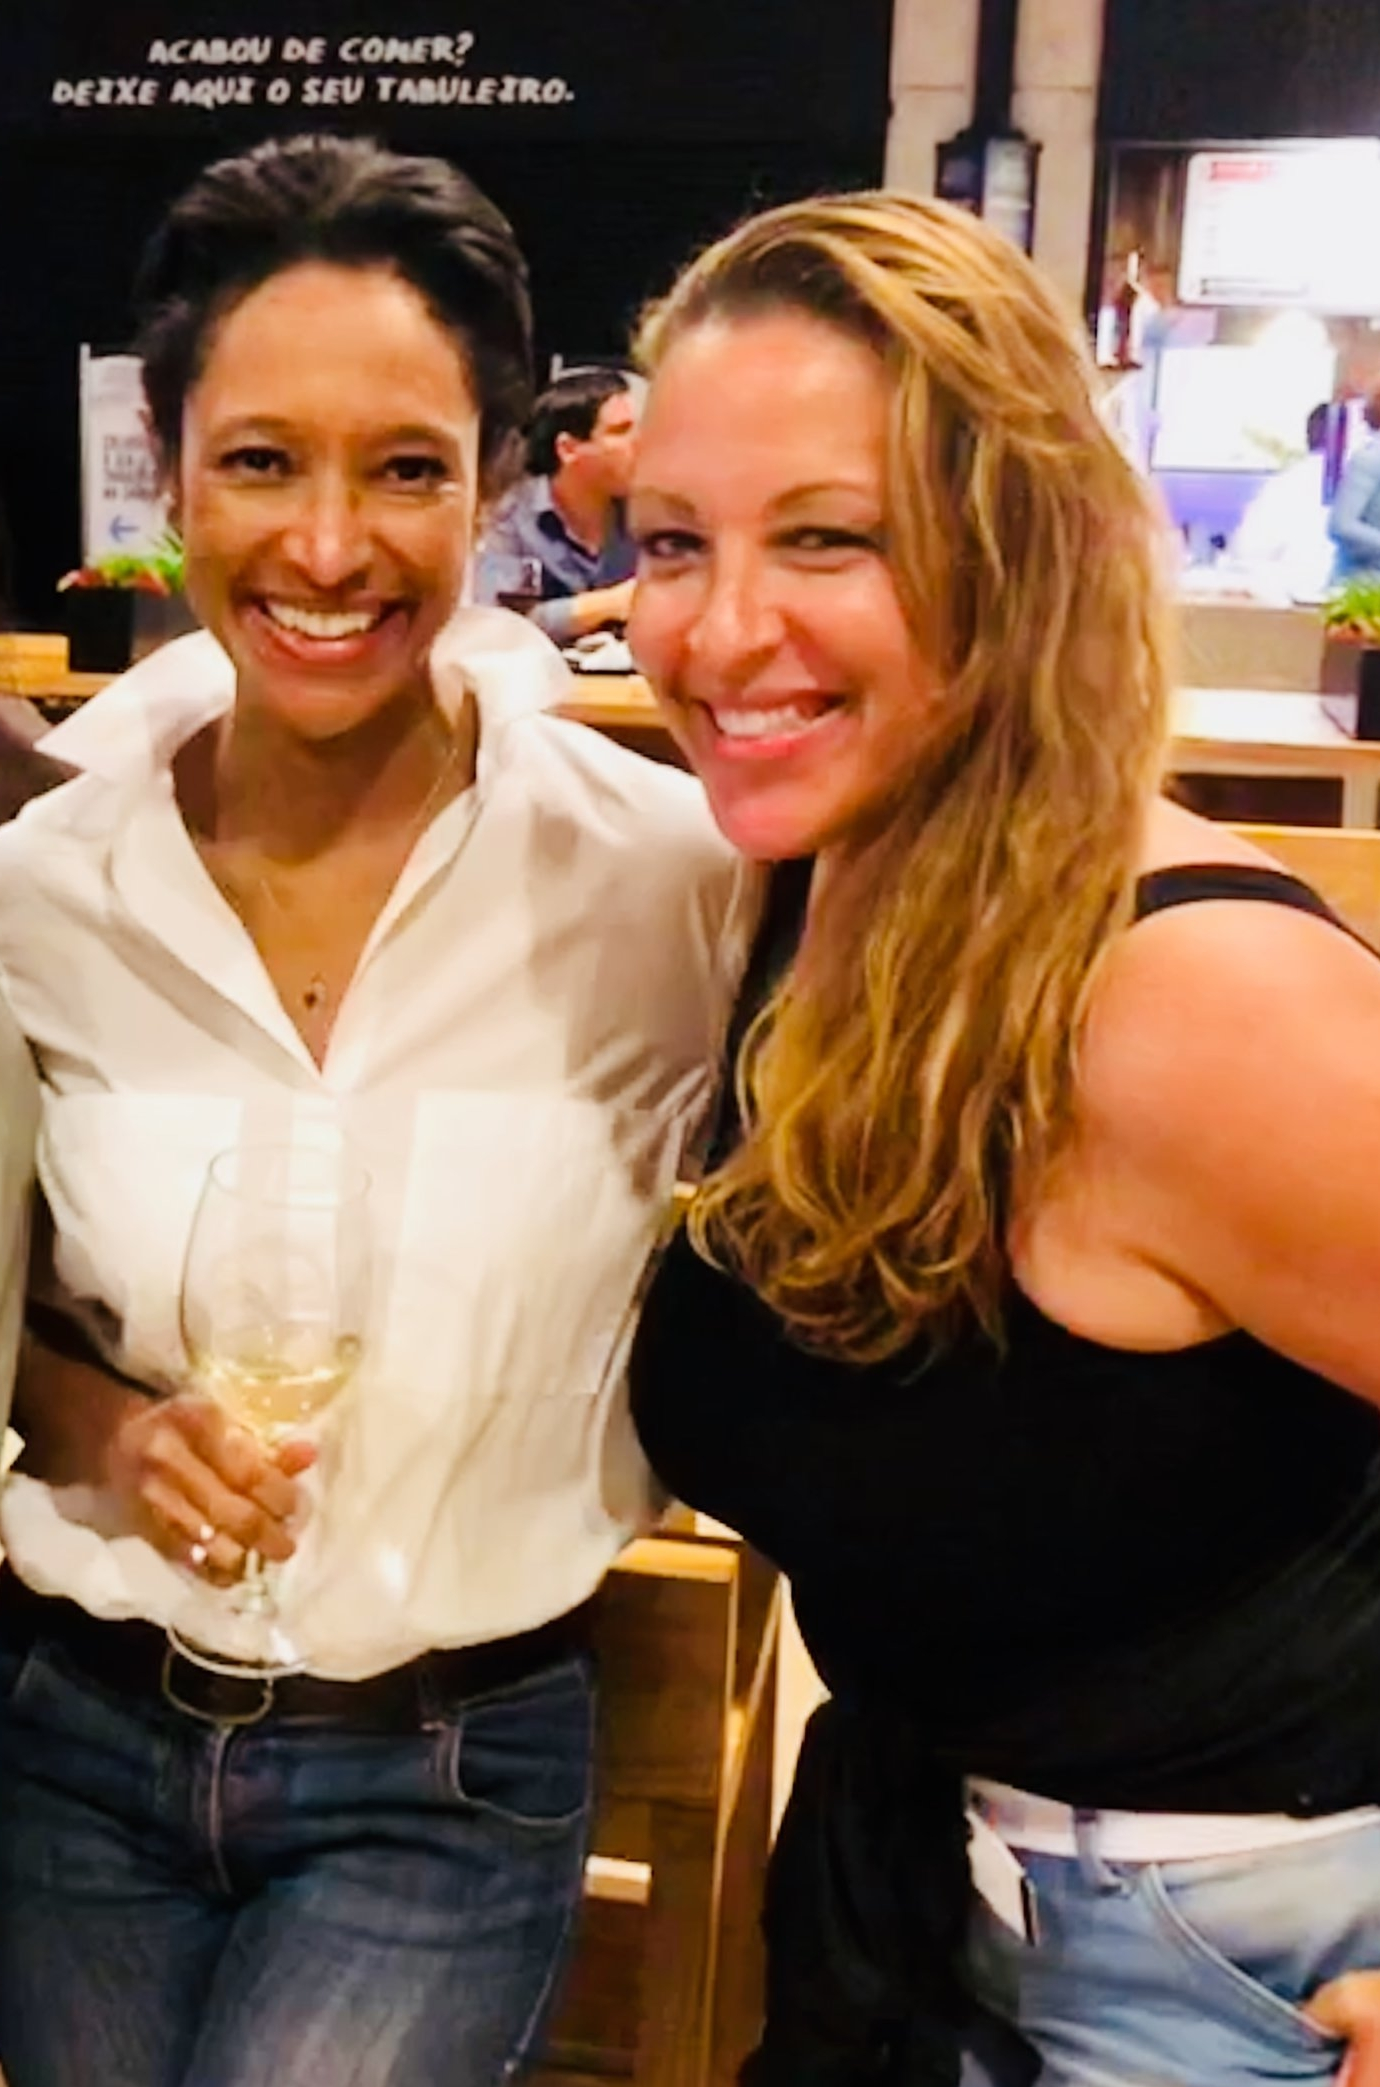 Jessica Malavez (l) meets up with Sheree Mitchell (r) in Lisbon, Portugal